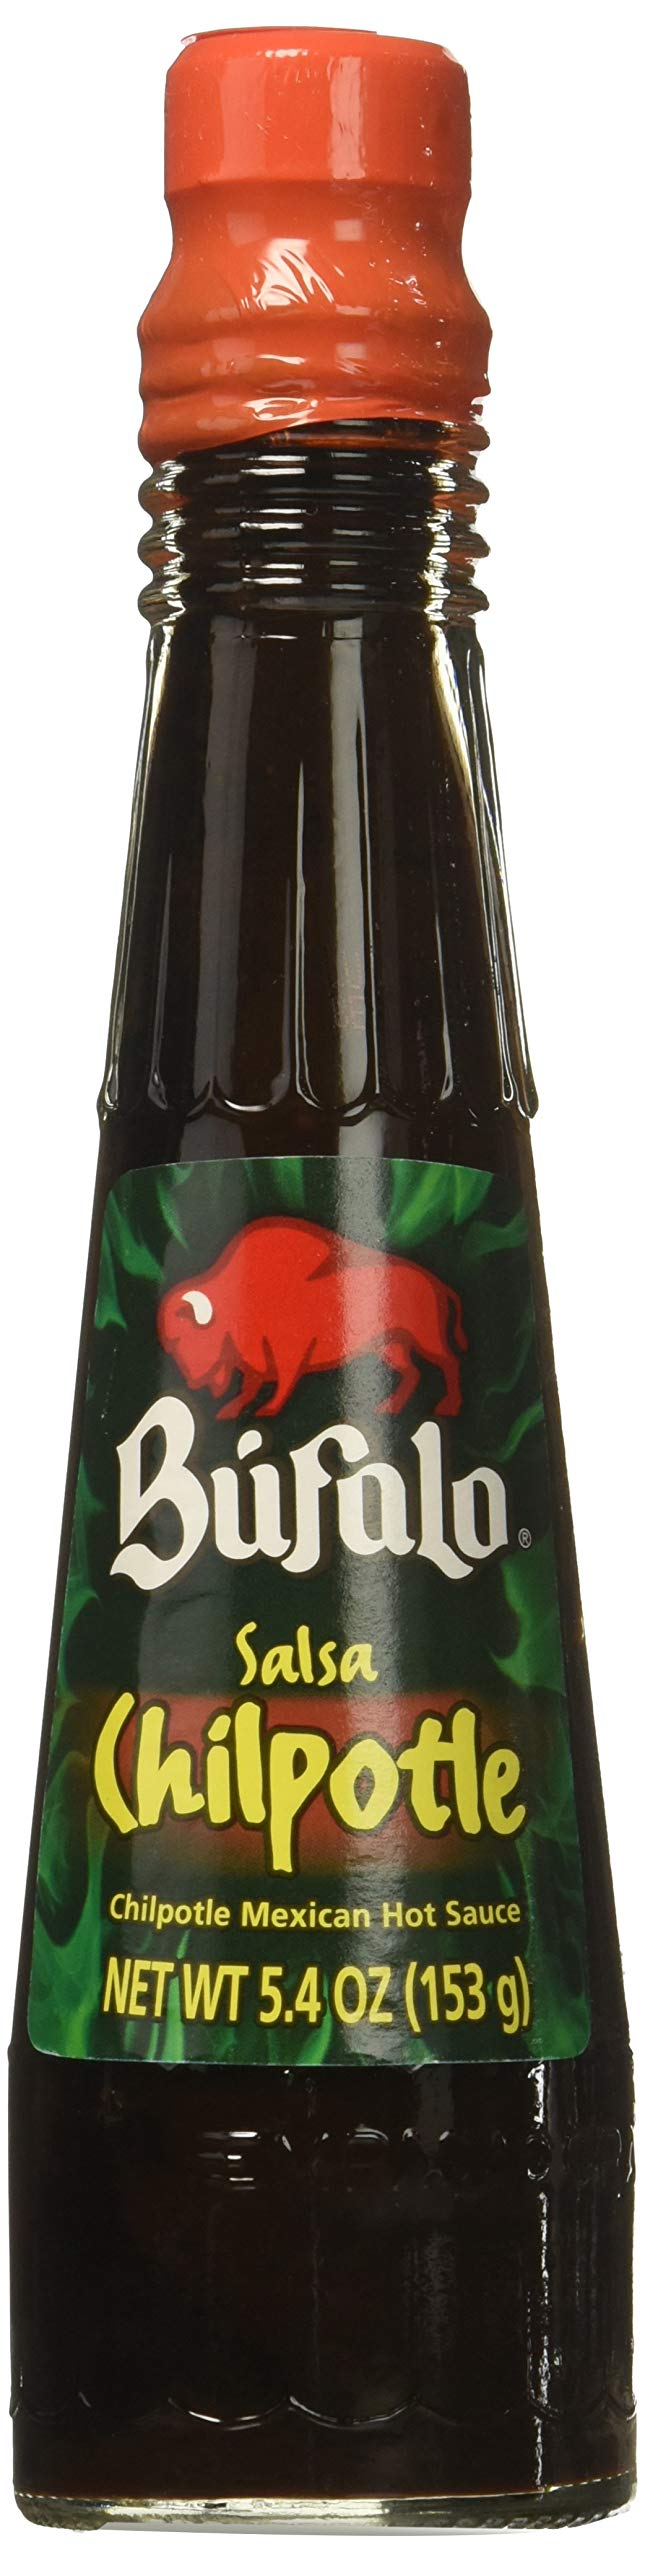 Bufalo Sauce Chipotle Hot, 5.4 oz